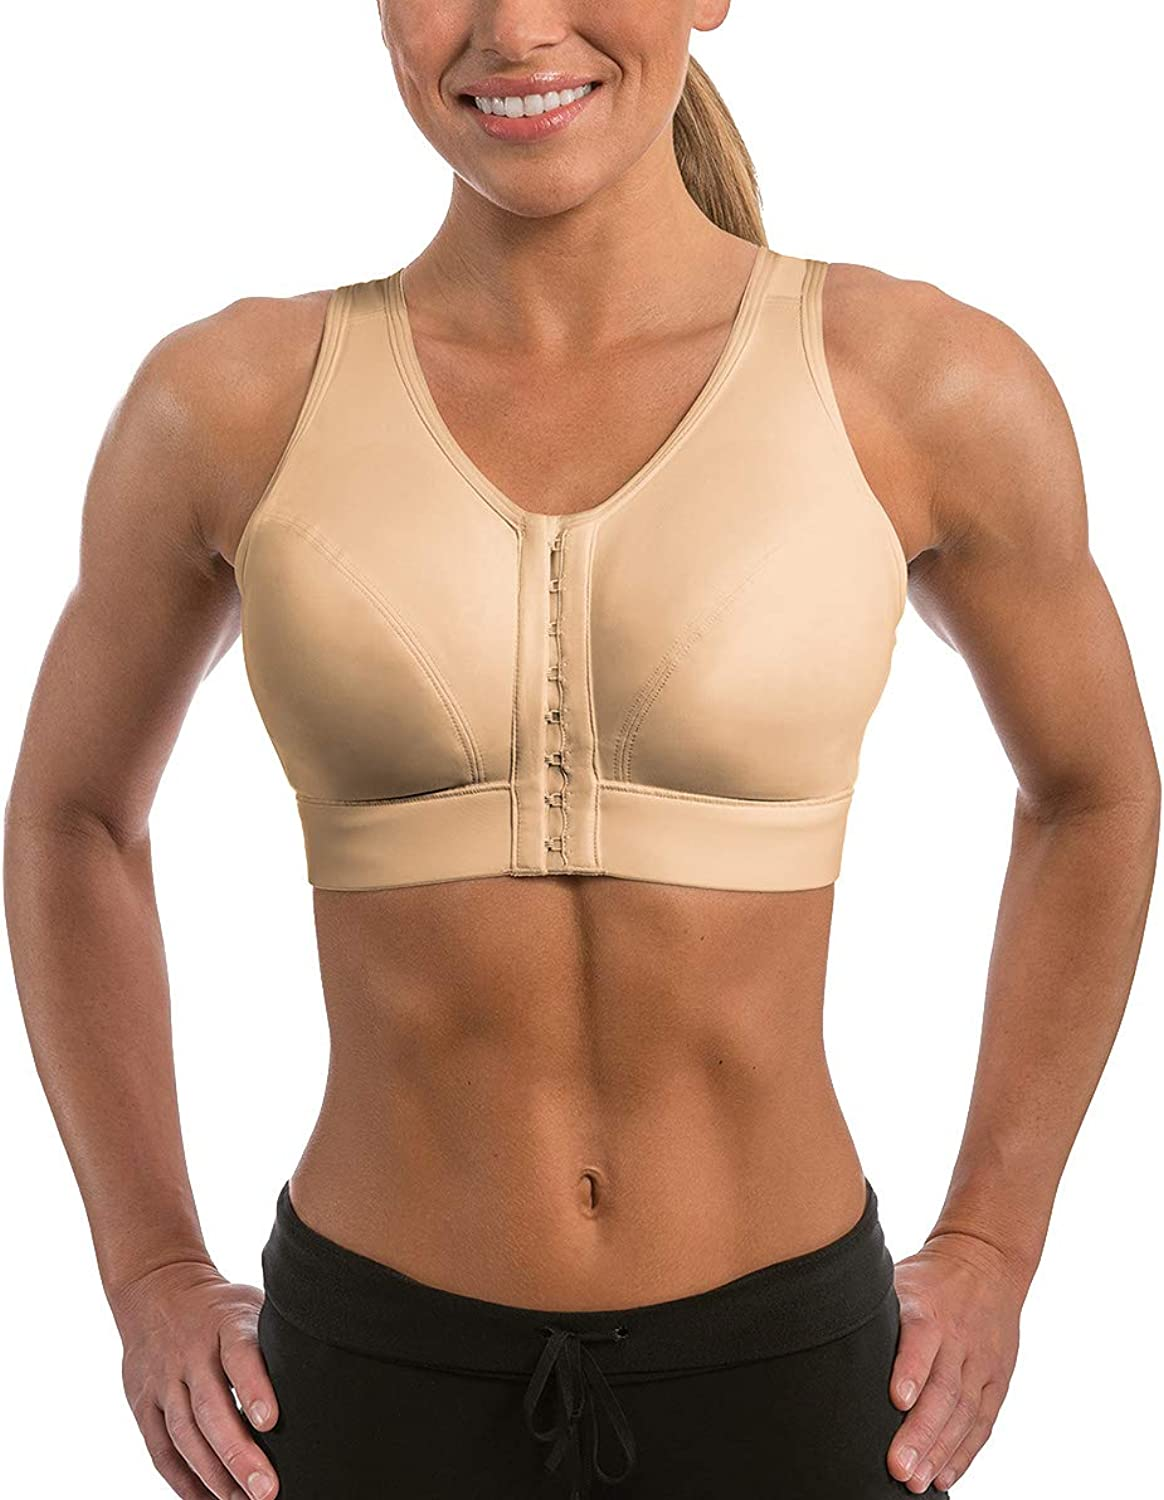 Enell Medium Control WireFree Sports Bra, 4, Ecru